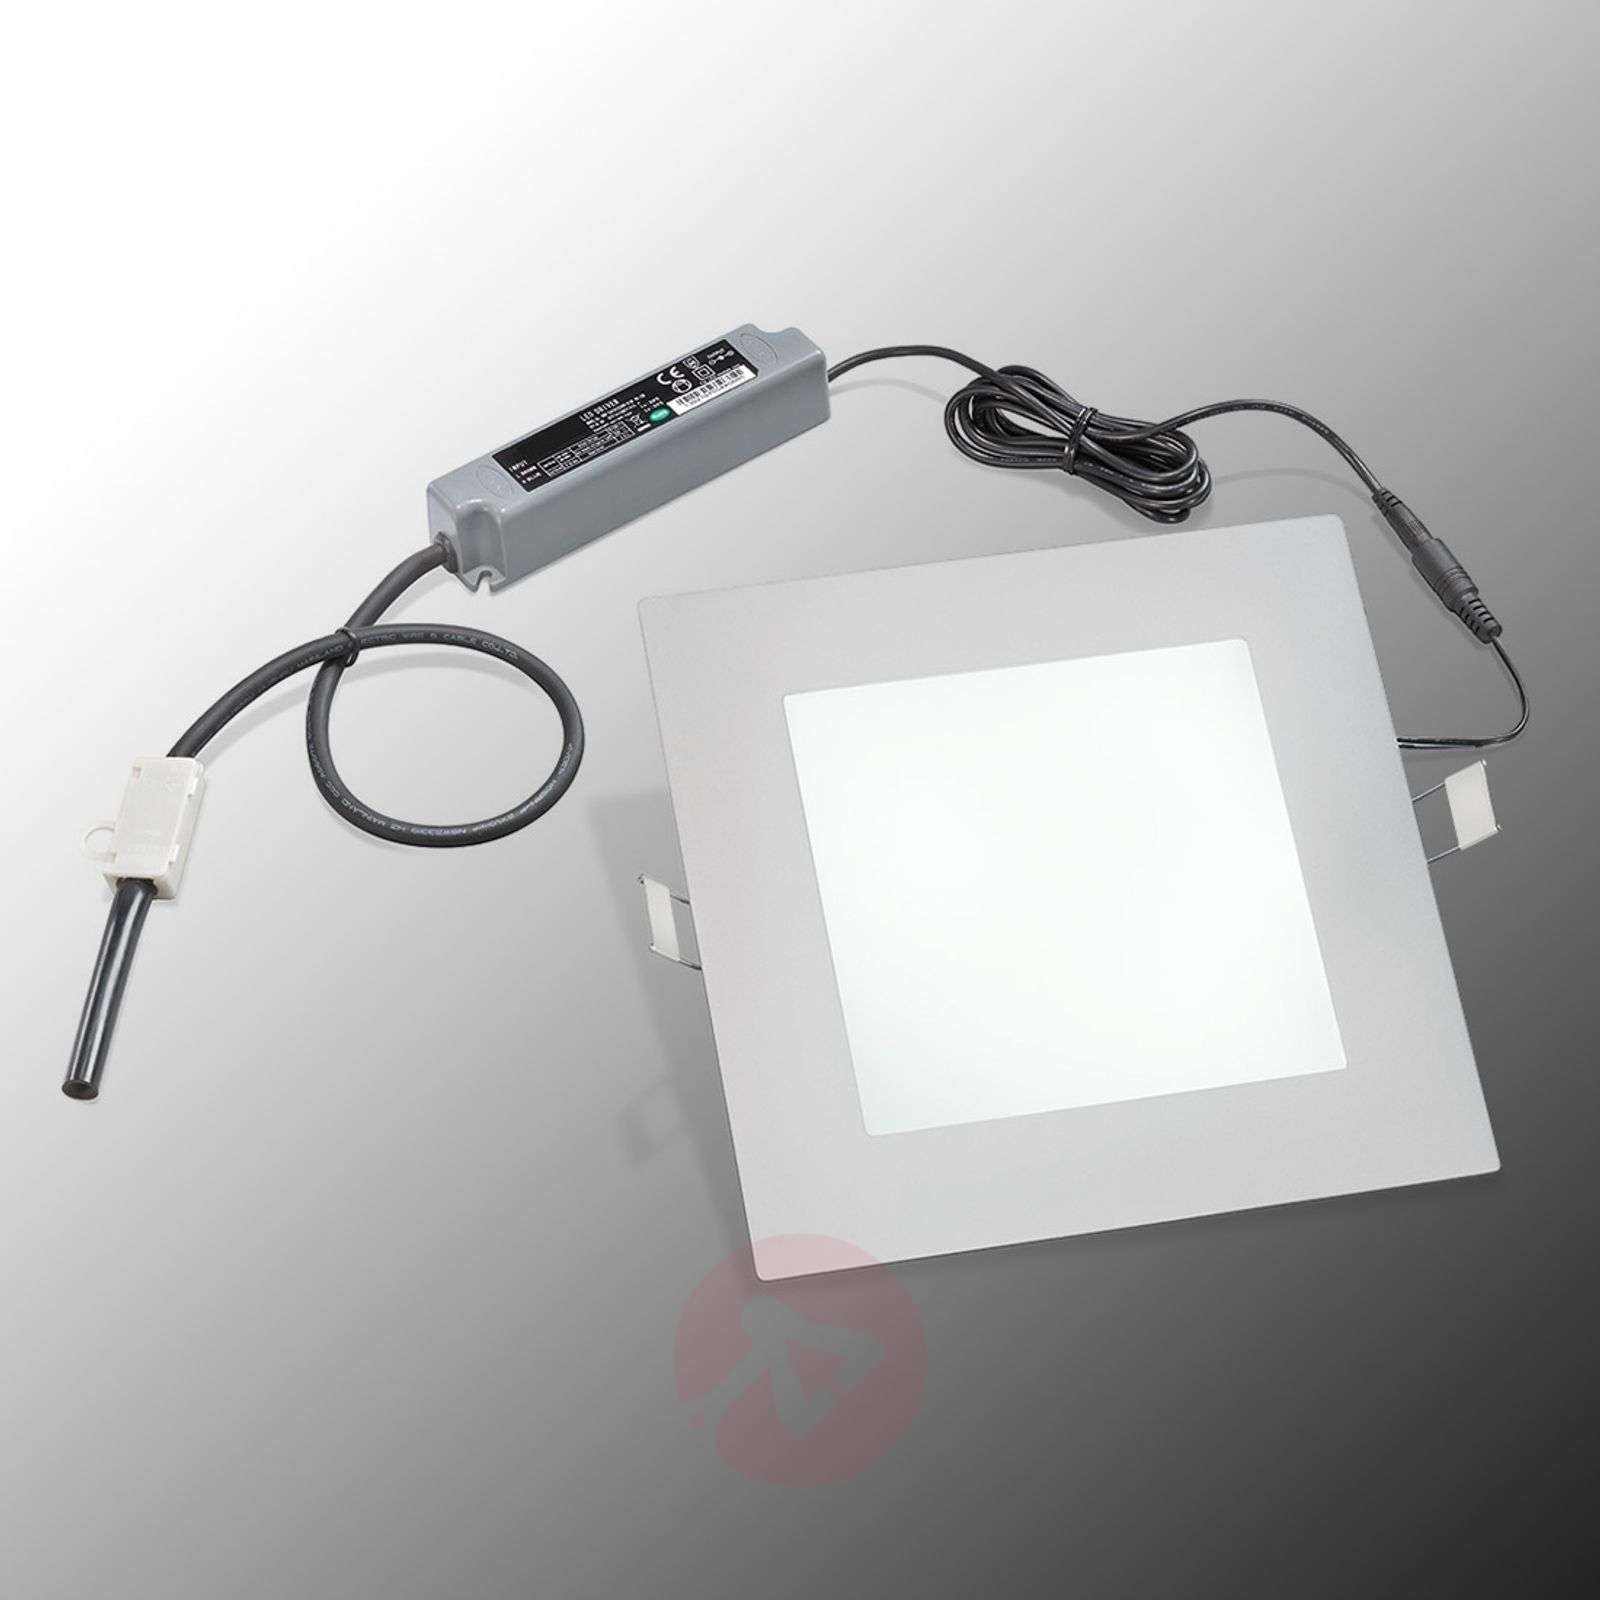 York Inbouwlamp met LED, daglicht-3012509-01